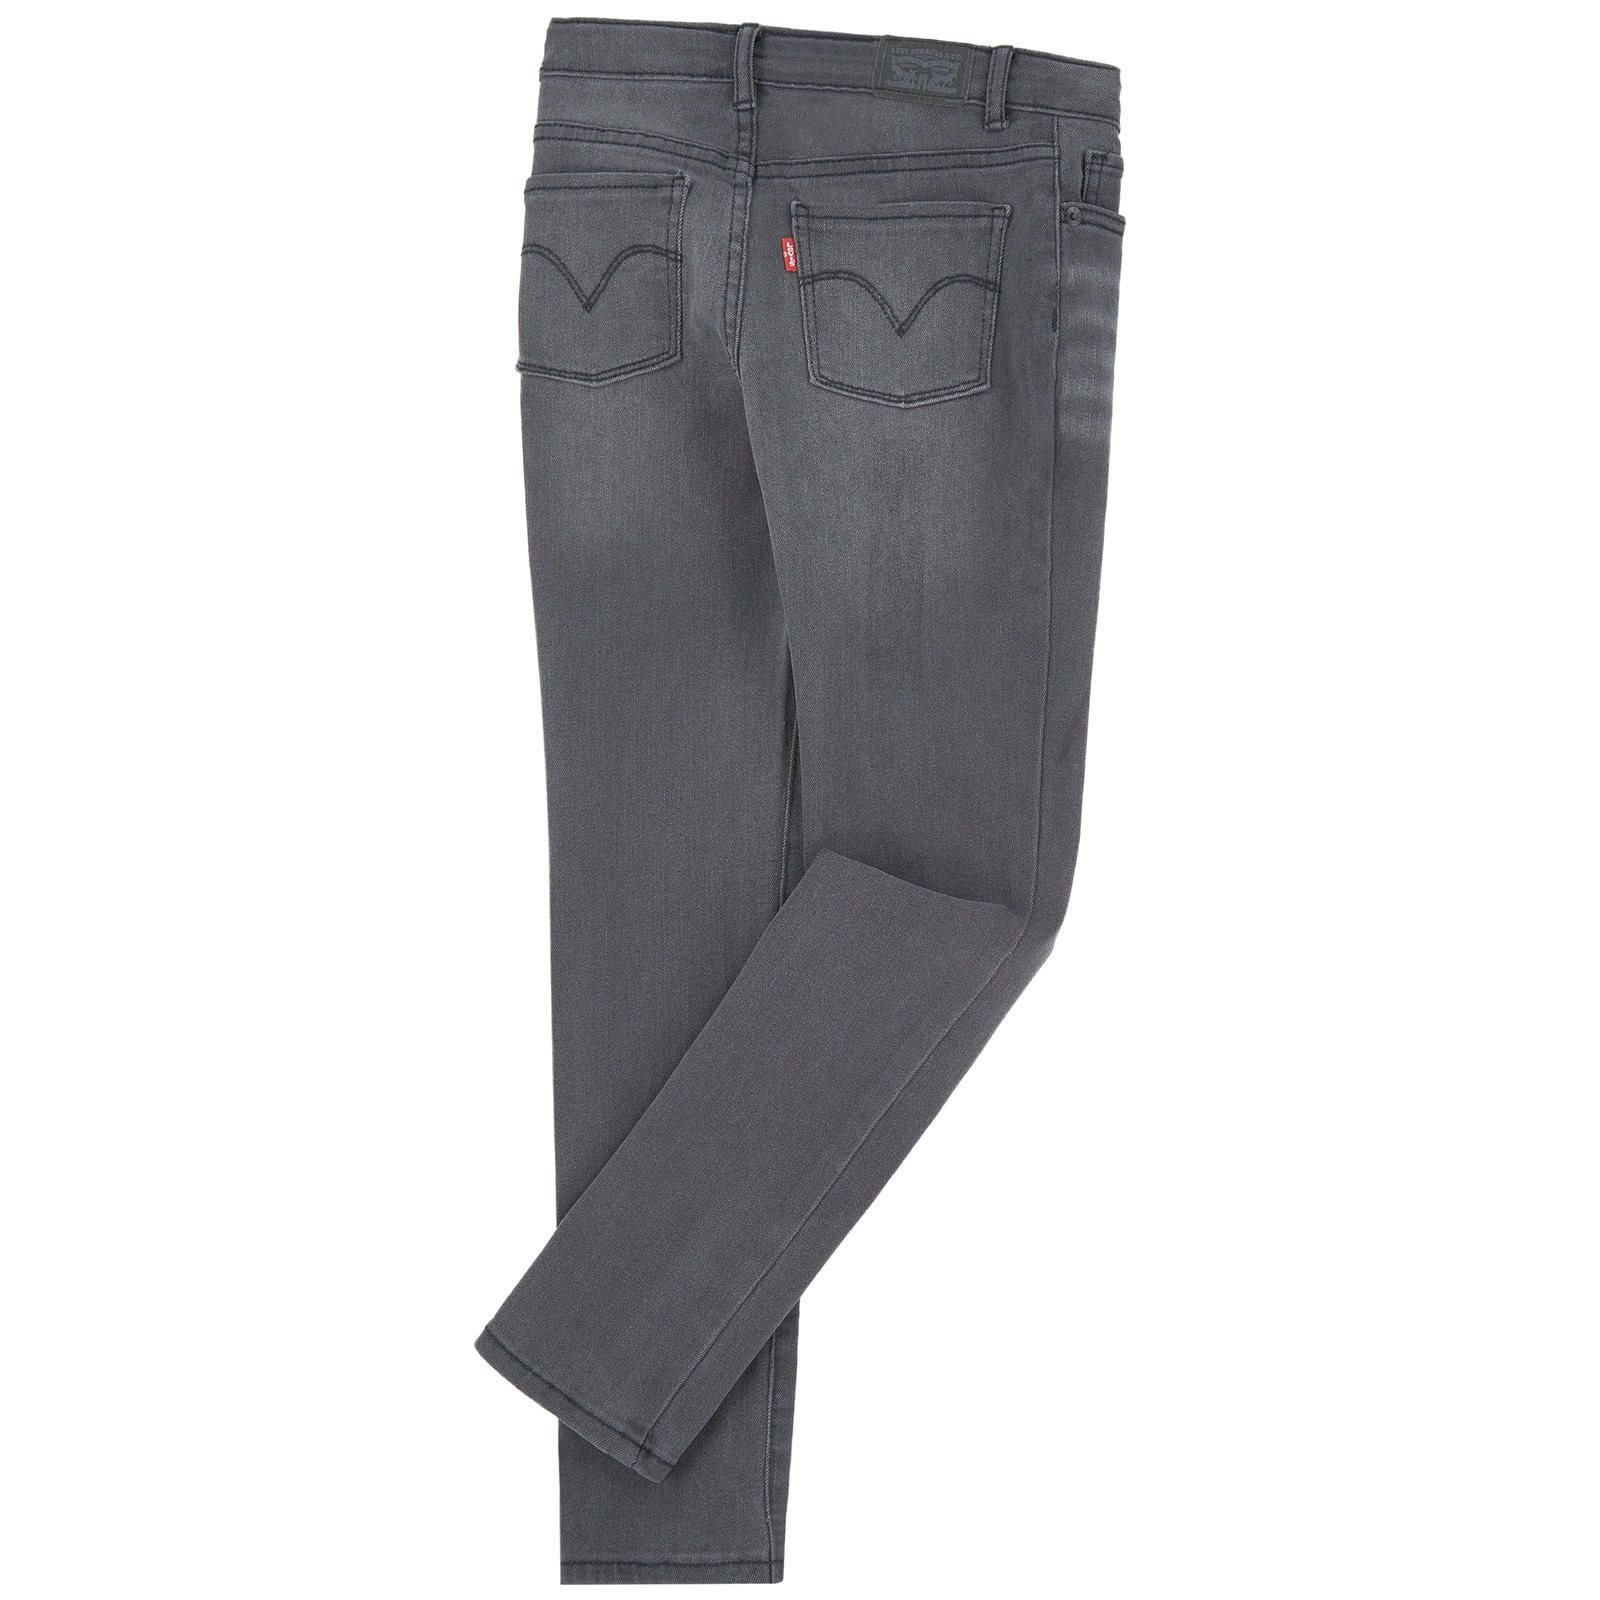 LEVIS jeans 711 skinny fit-5